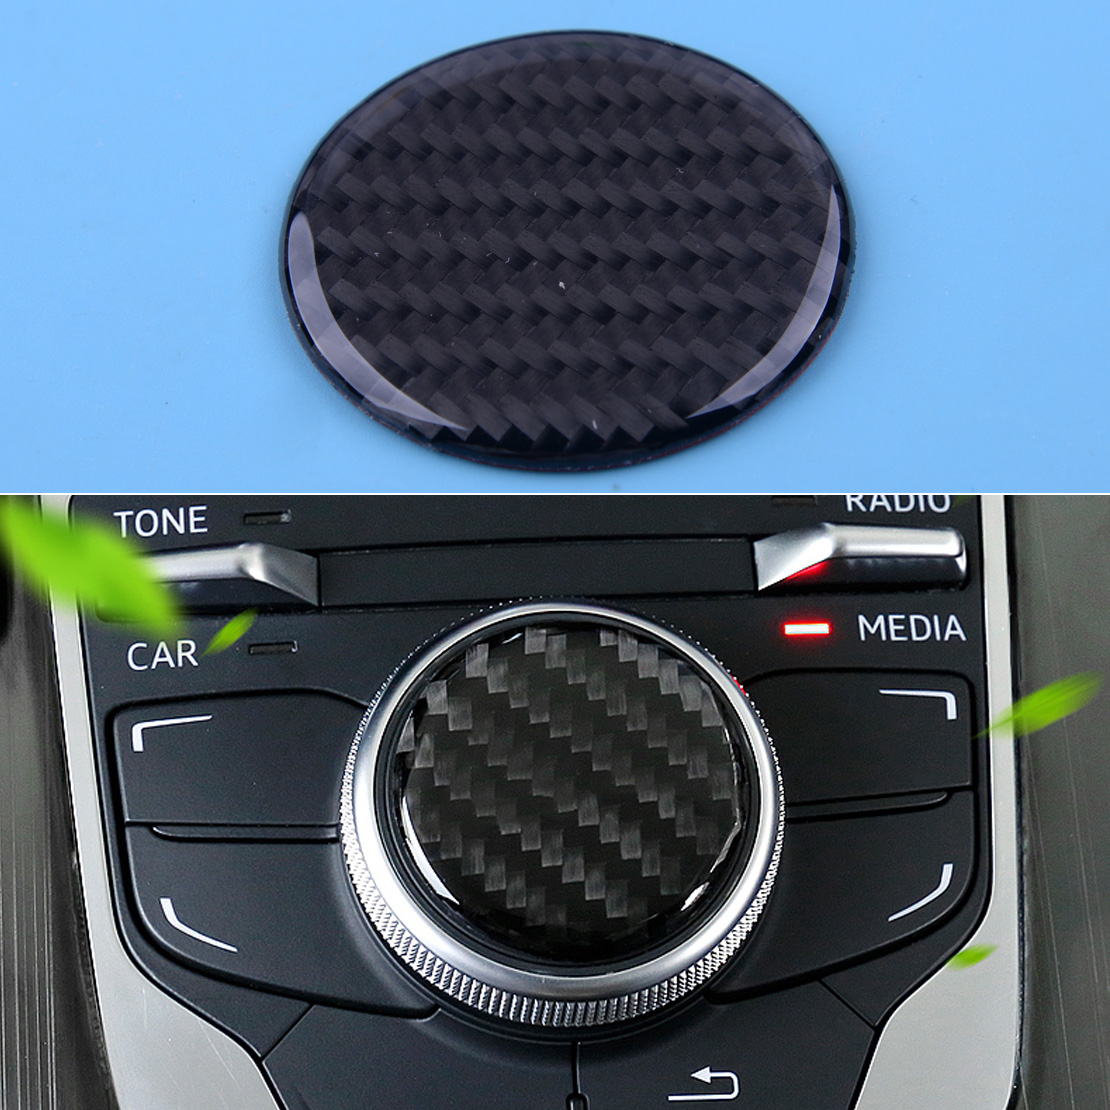 Carbon Fiber Car Multi-Media Control Knob Decor Sticker Fit For Audi A3 S3 8V 2014 2015 2016 2017 2018 2019 image